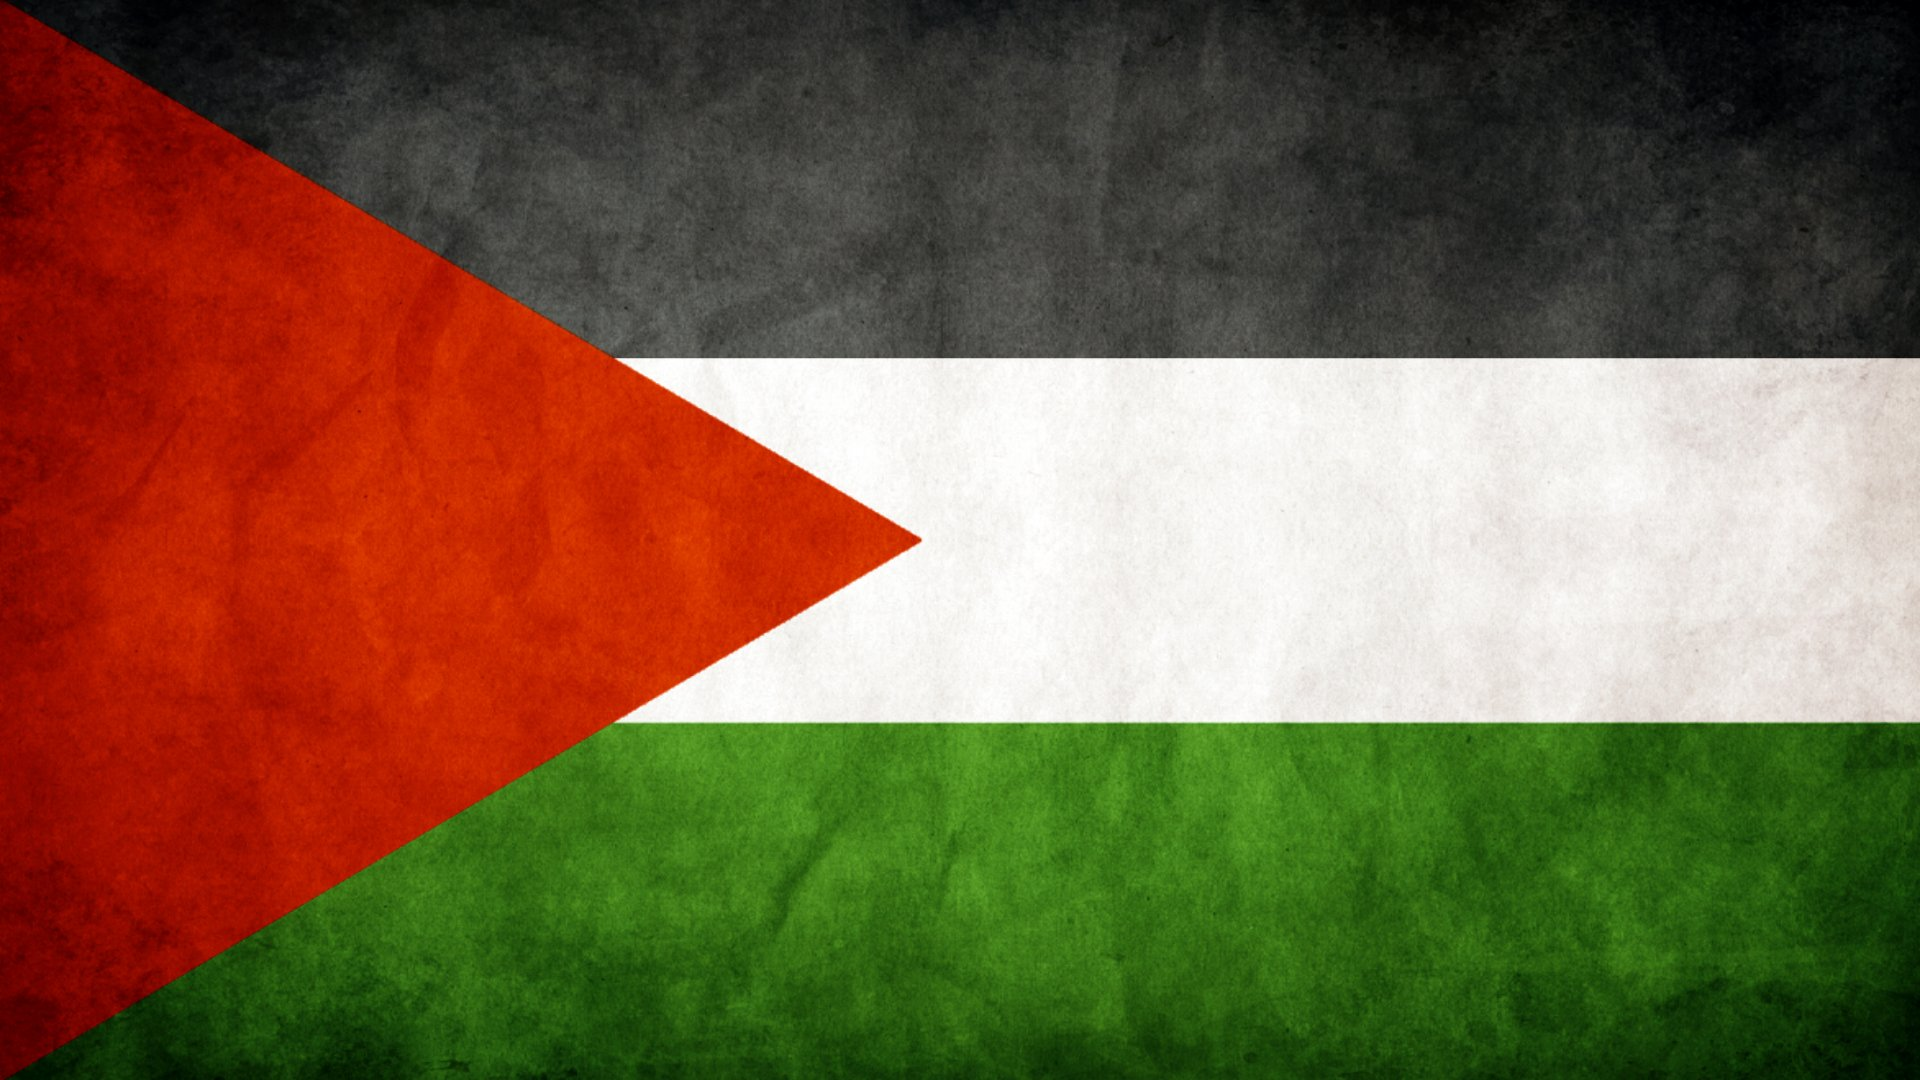 Palestinian flag wallpaper wallpapersafari - Palestine flag wallpaper hd ...